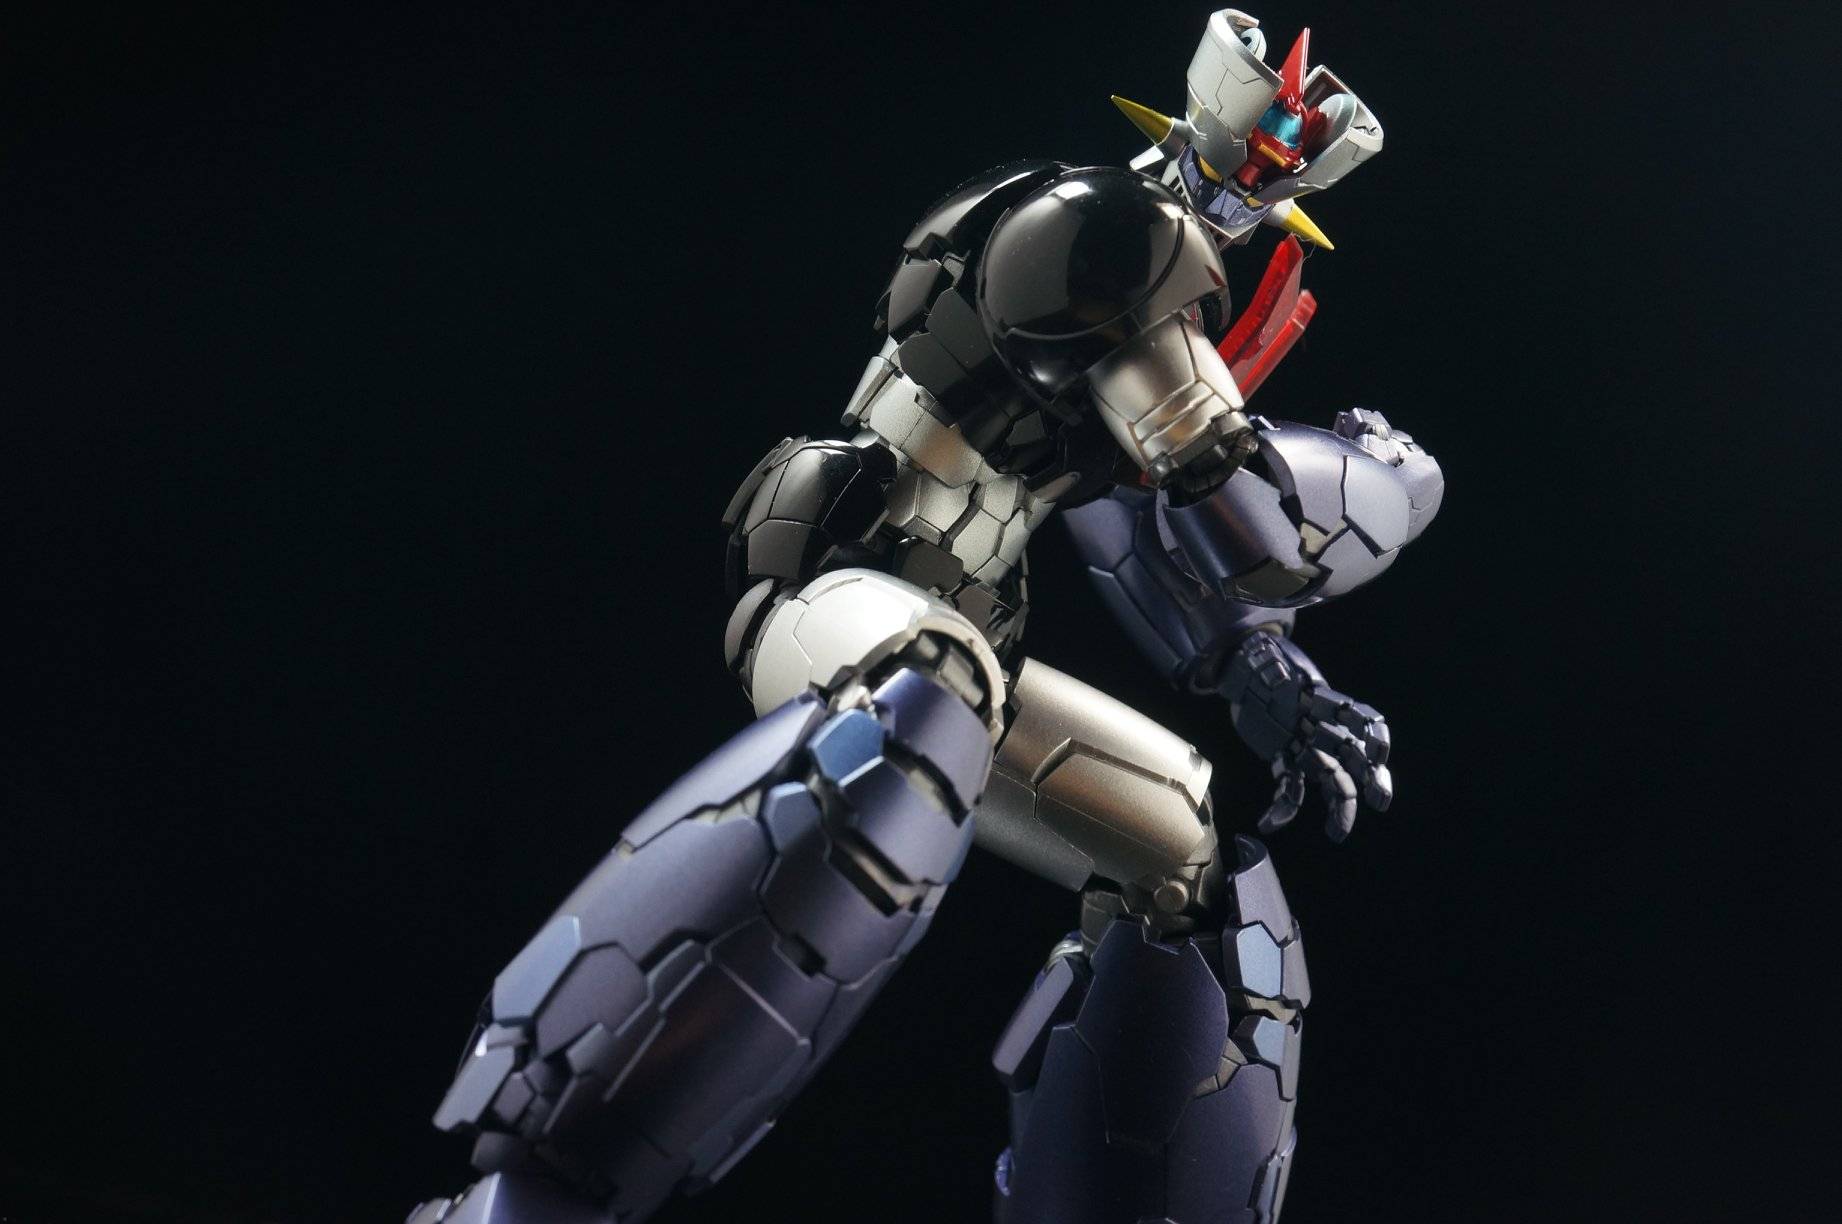 Mazinger Z Infinity - Metal Build (Bandai) - Page 2 42USSqRr_o